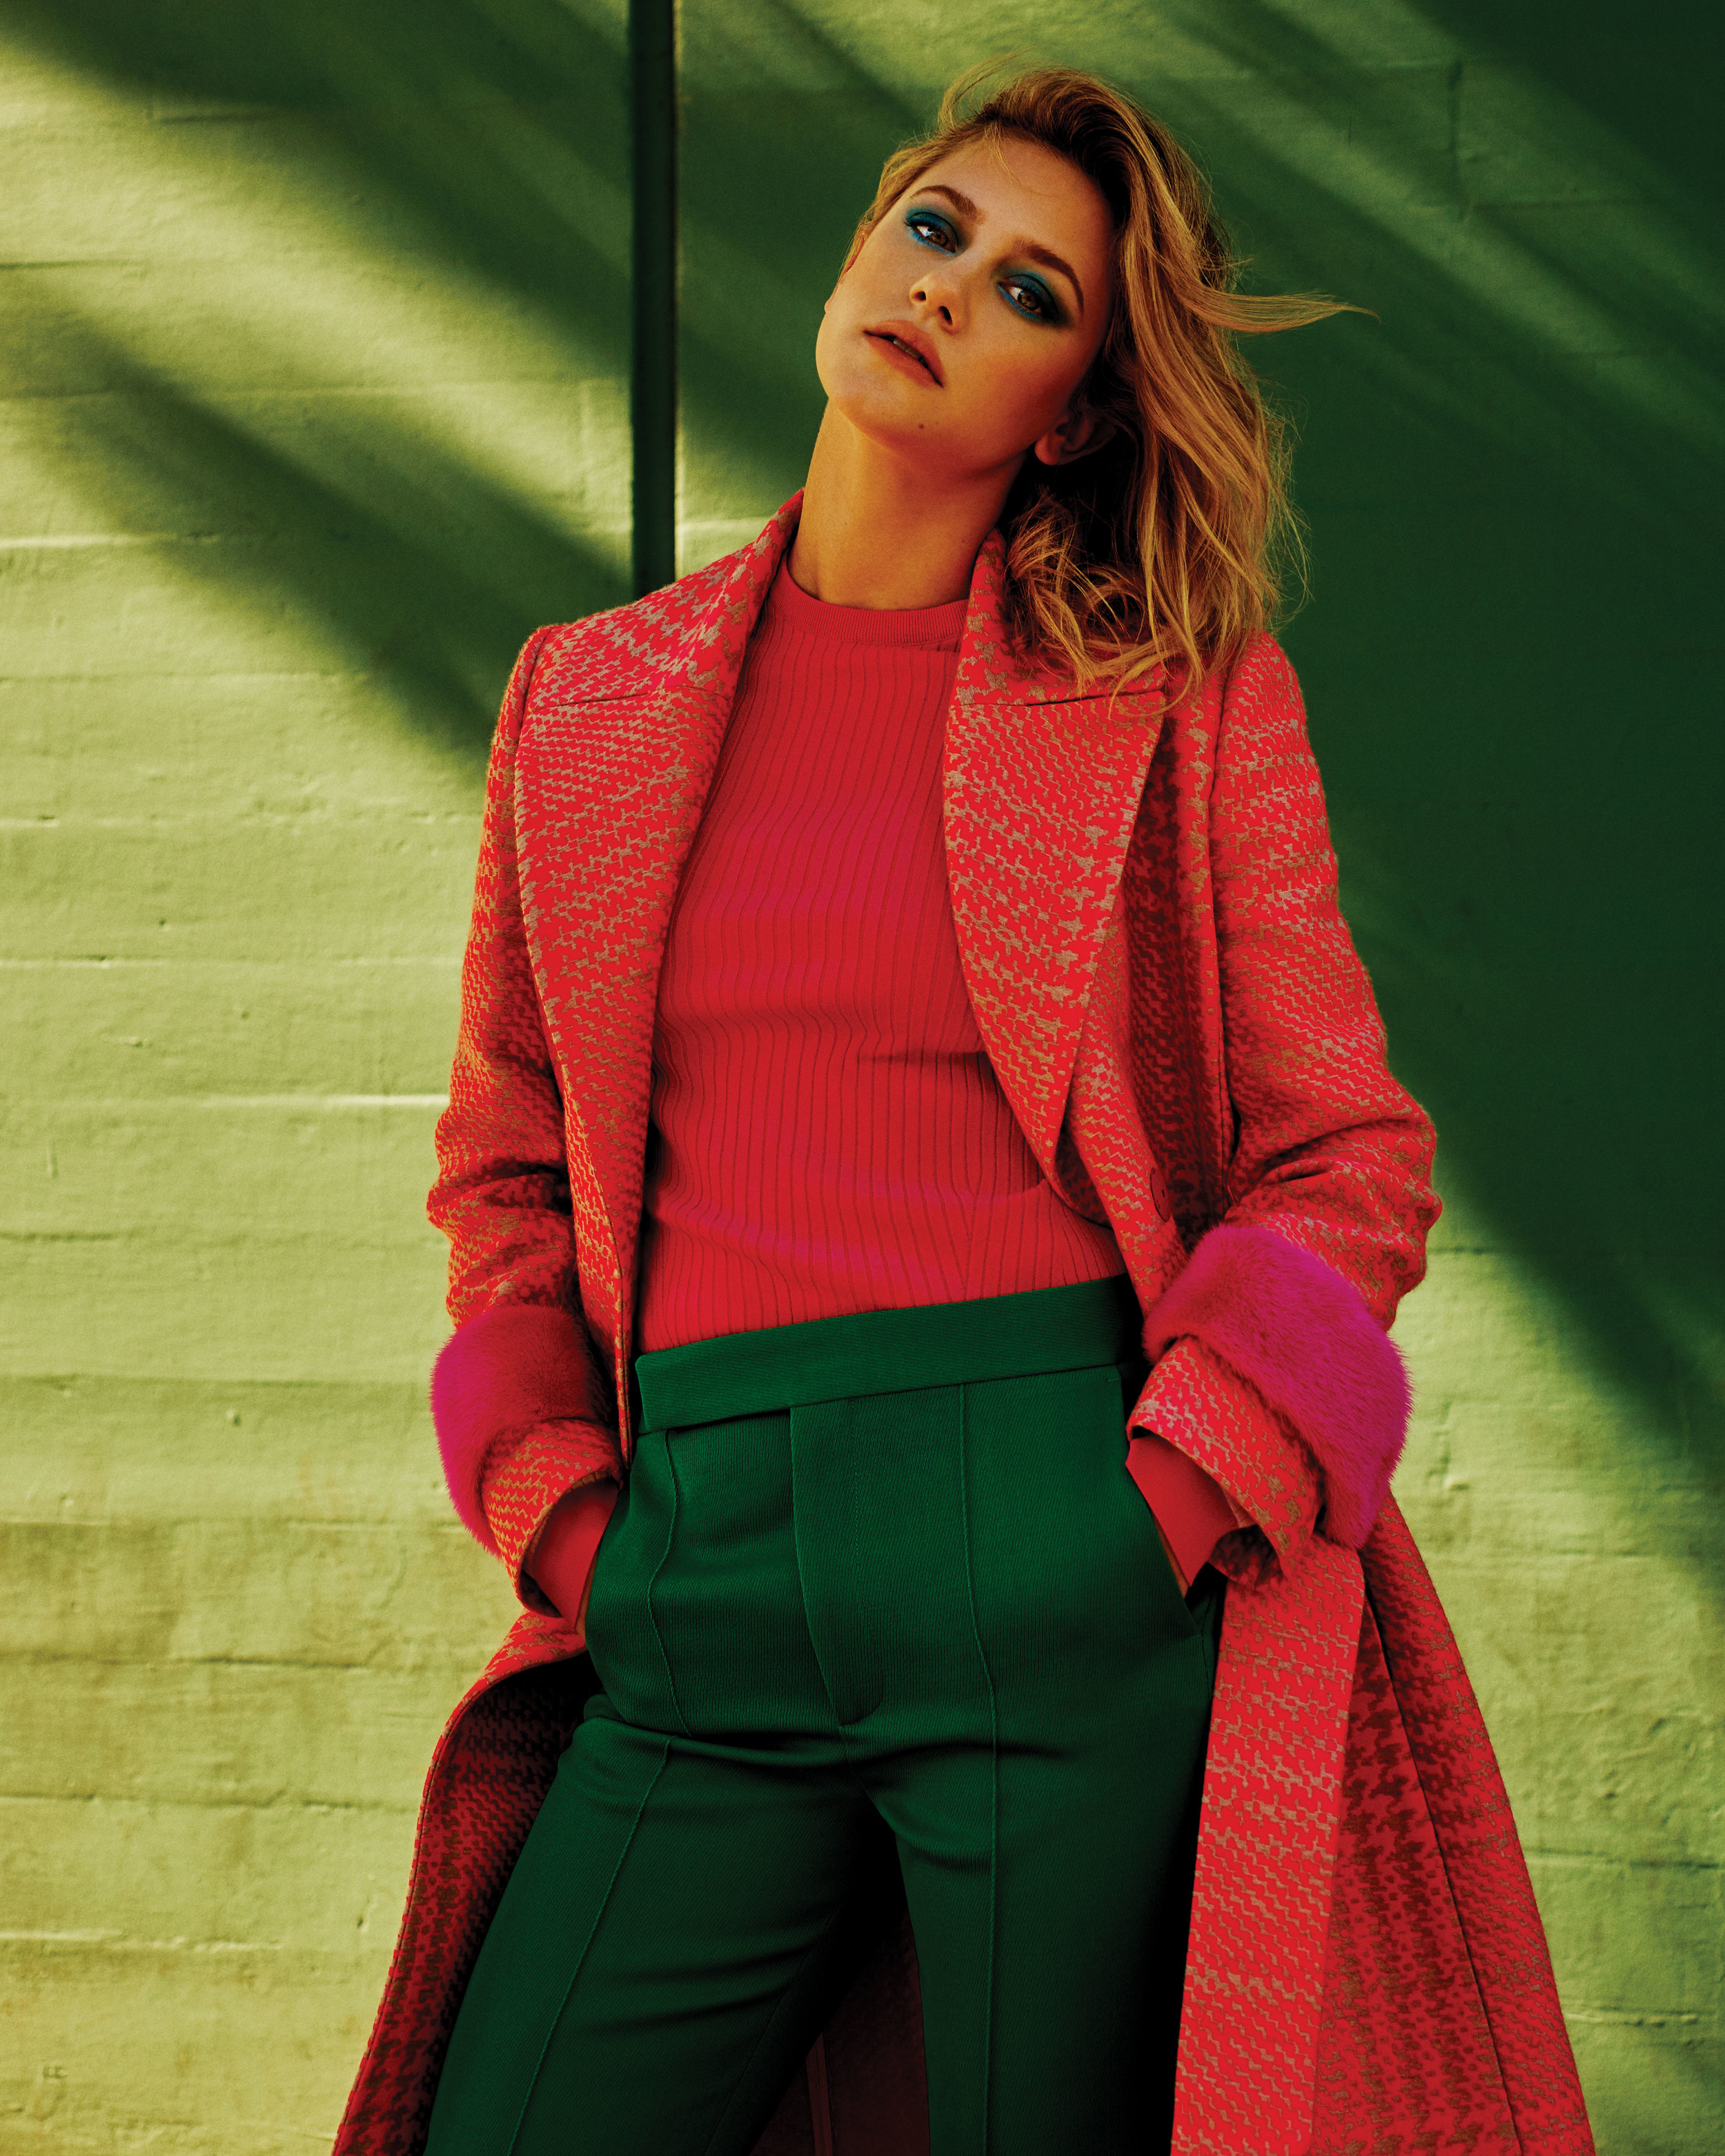 Lili Reinhart  | all images shot by Clay Gardner | Fashion Credits:  FENDI  available at Barneys New York coat,  VALENTINO  available at Barneys New York top,  CÉLINE  available at Barneys New York pants.